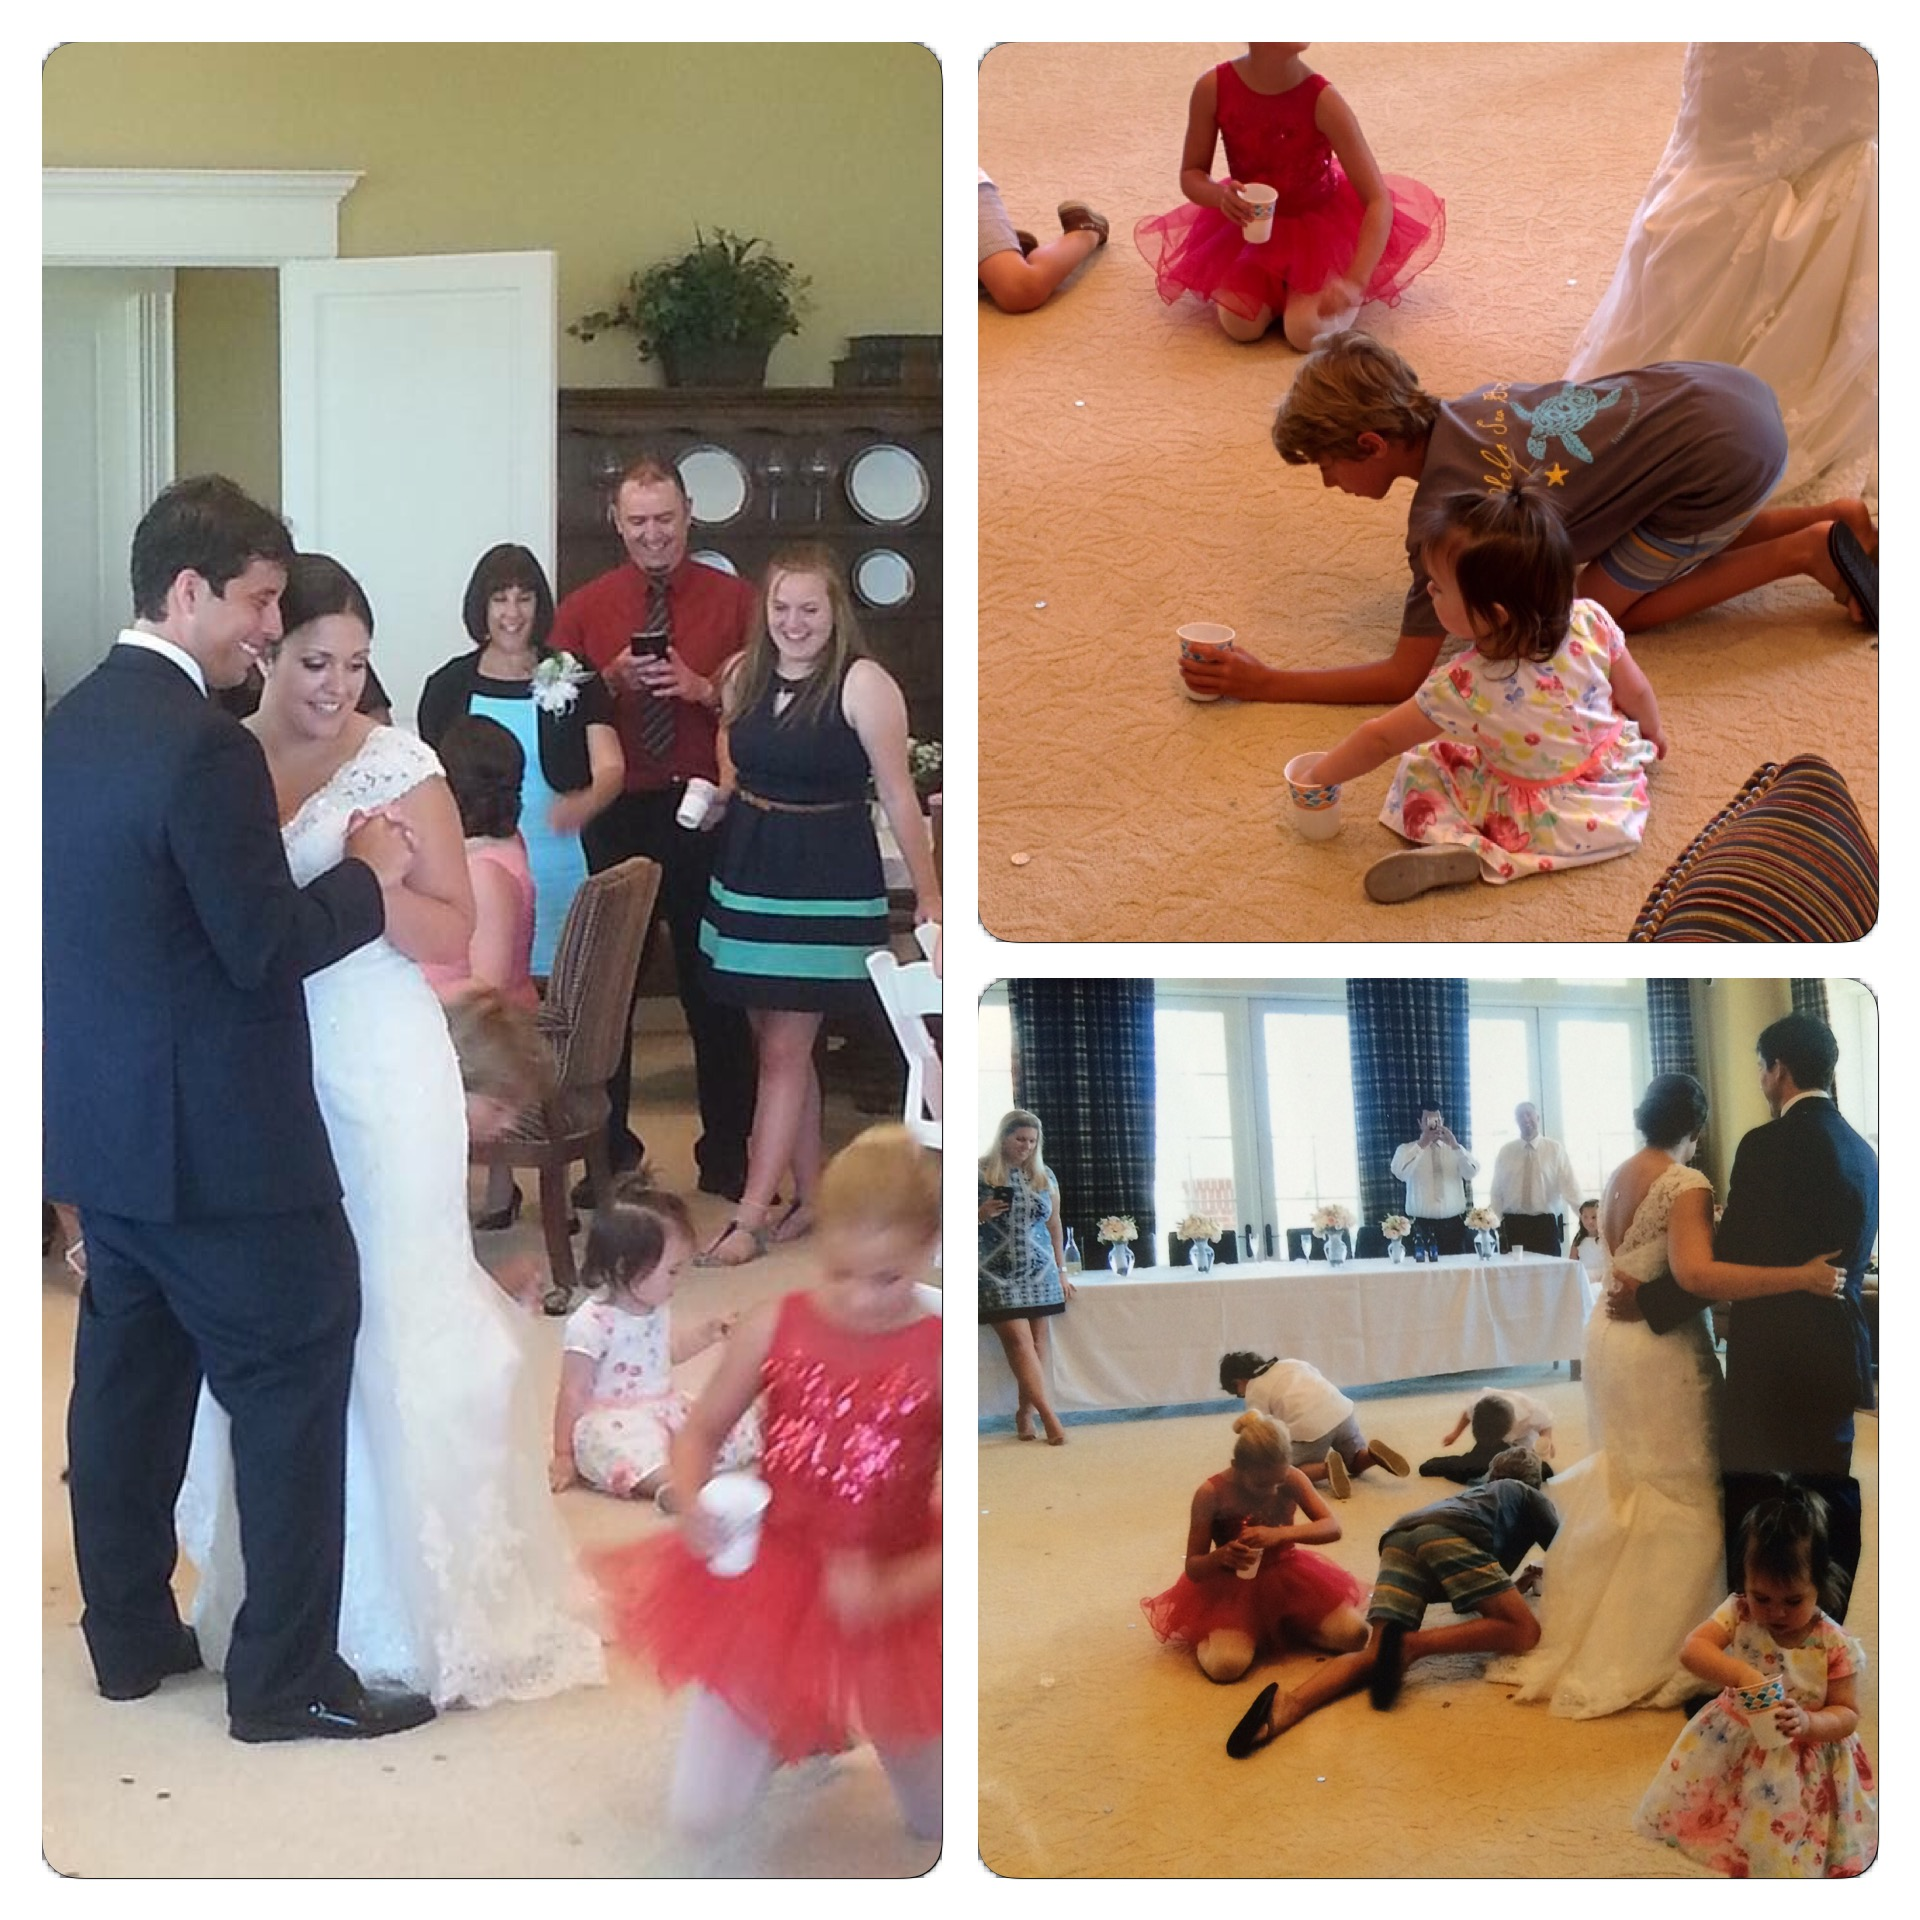 The coin dance is fun for both the kids and the newlyweds.